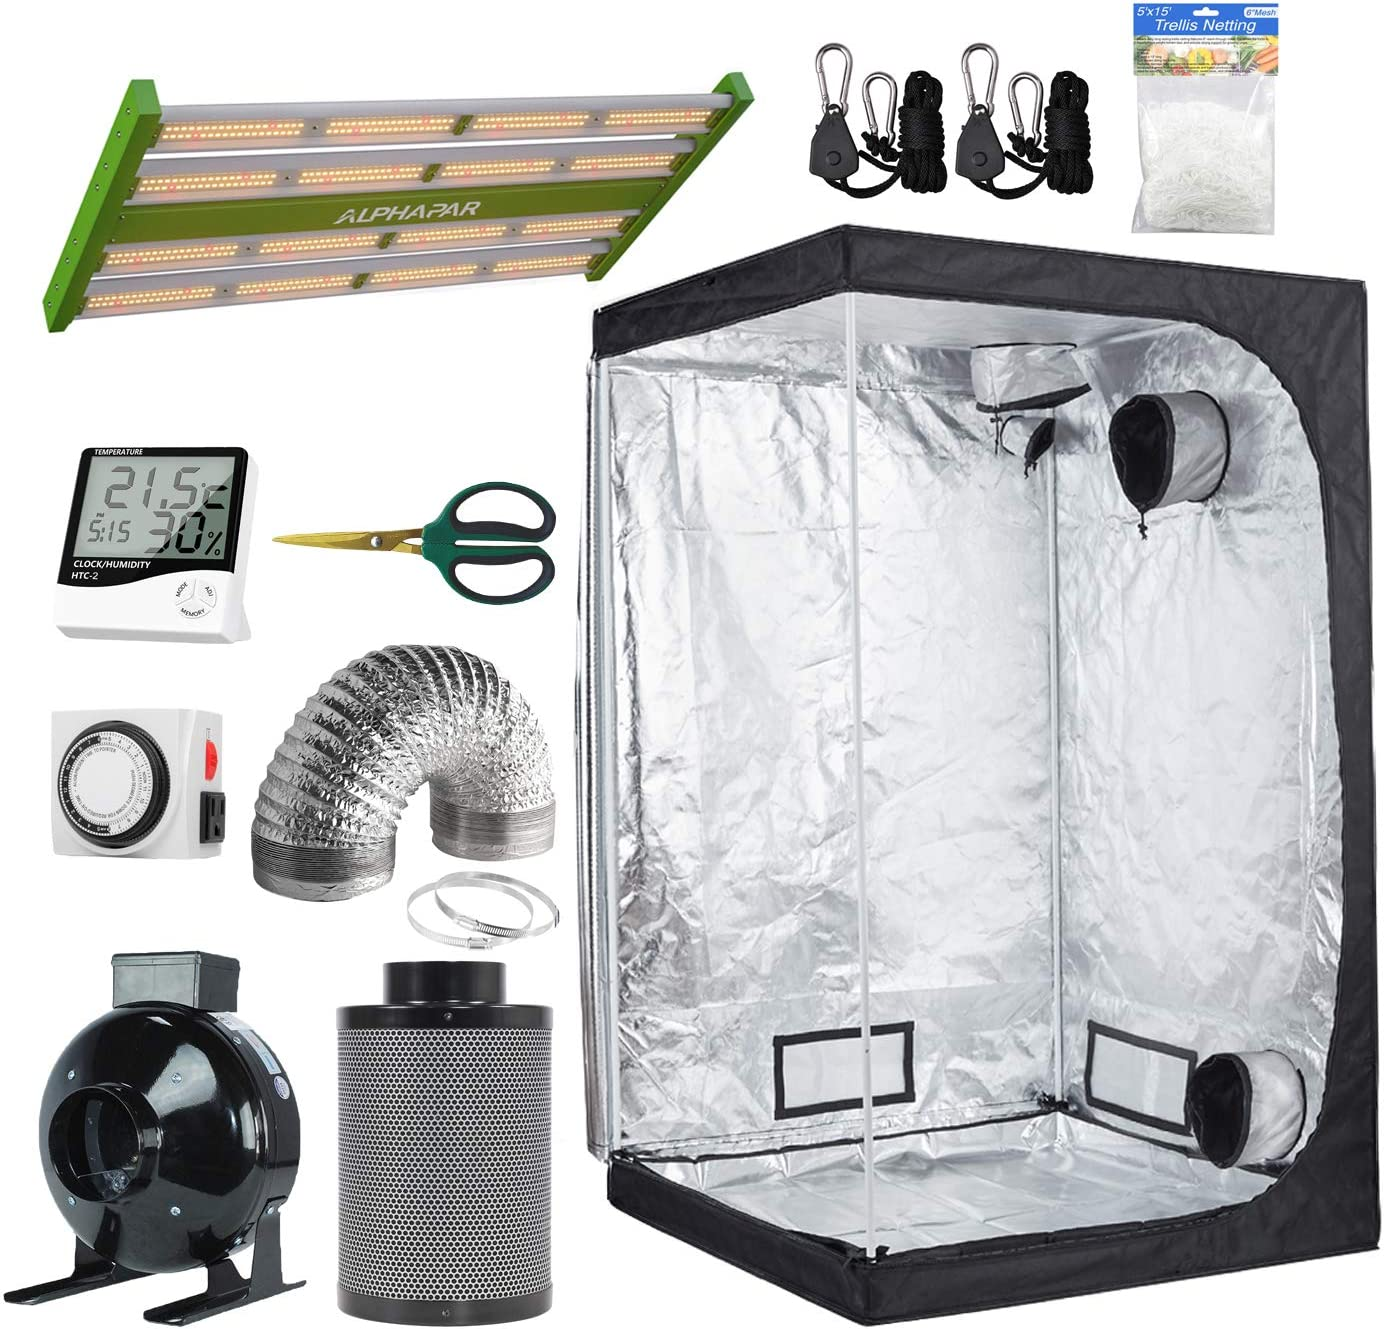 BloomGrow 48 x24 x72 Mylar Grow Tent Grow Box 4 Inline Fan Air Filter Ventilation System 1500W LED Full Spectrum Professional Grow Light Strips Indoor Plant Grow Tent Kit Complete Package